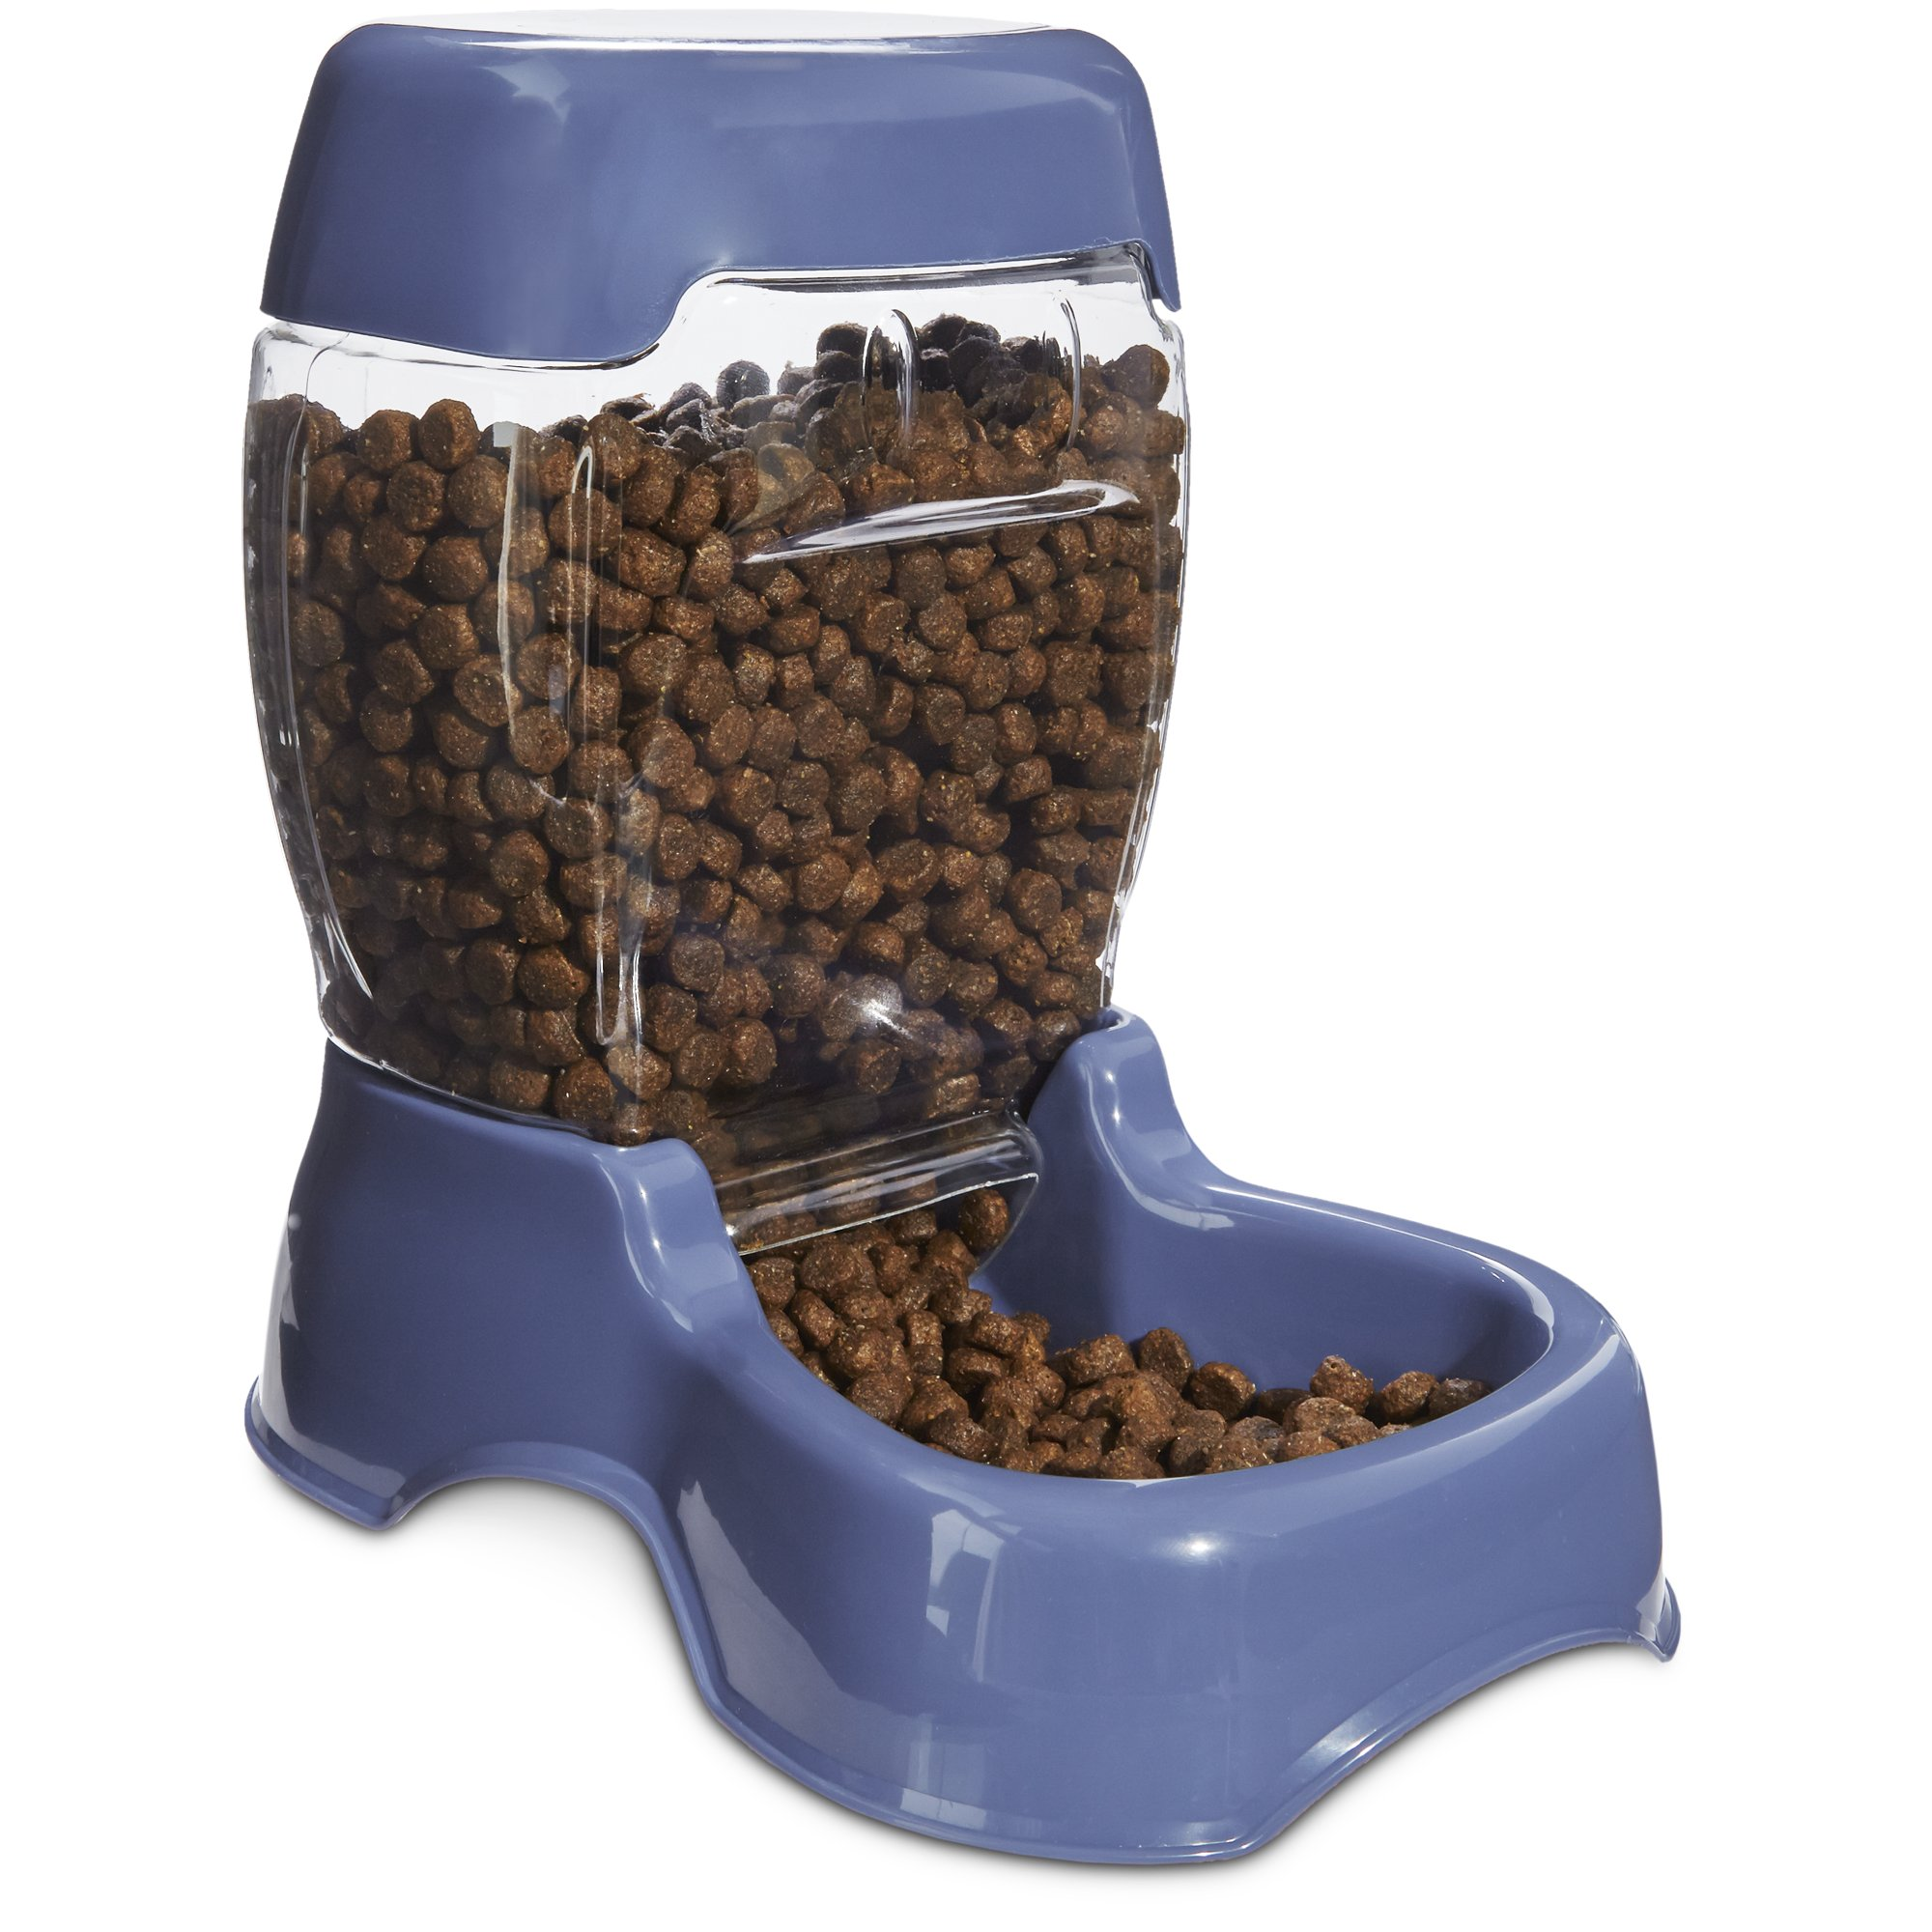 Harmony Cafe Gravity Feeder Navy Dog Bowl